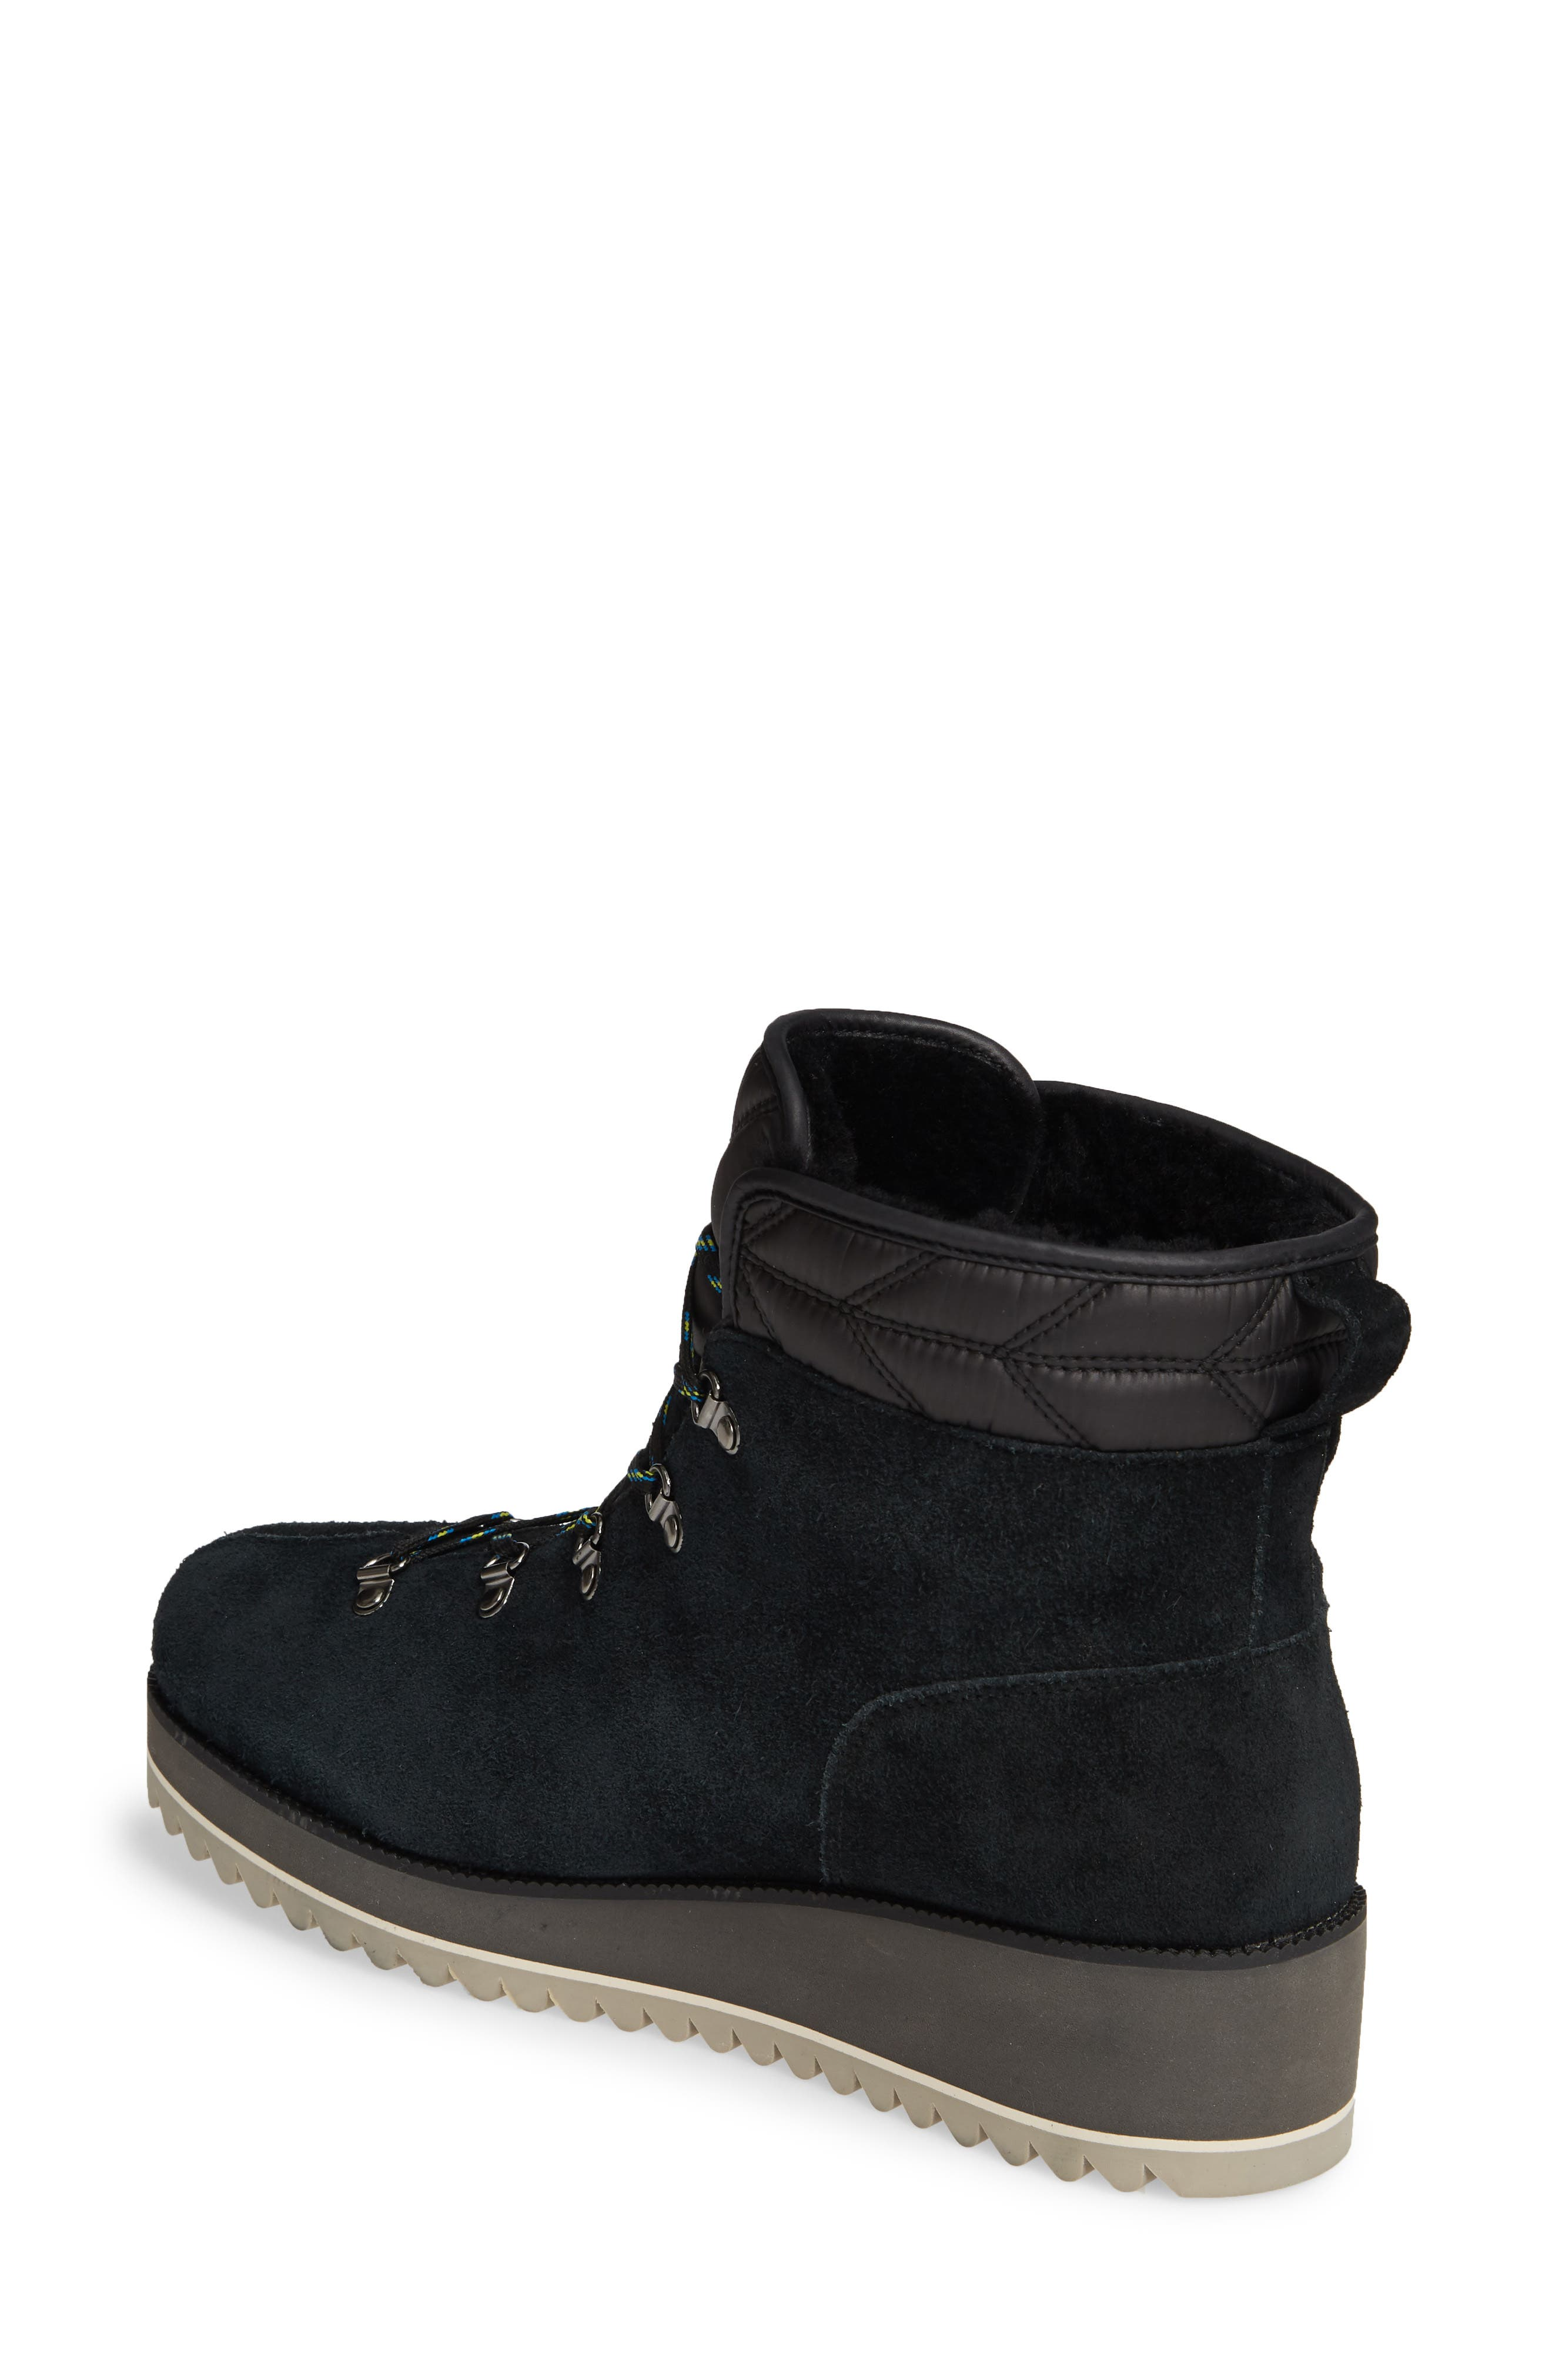 UGG<SUP>®</SUP>, Birch Waterproof Lace-Up Winter Bootie, Alternate thumbnail 2, color, BLACK